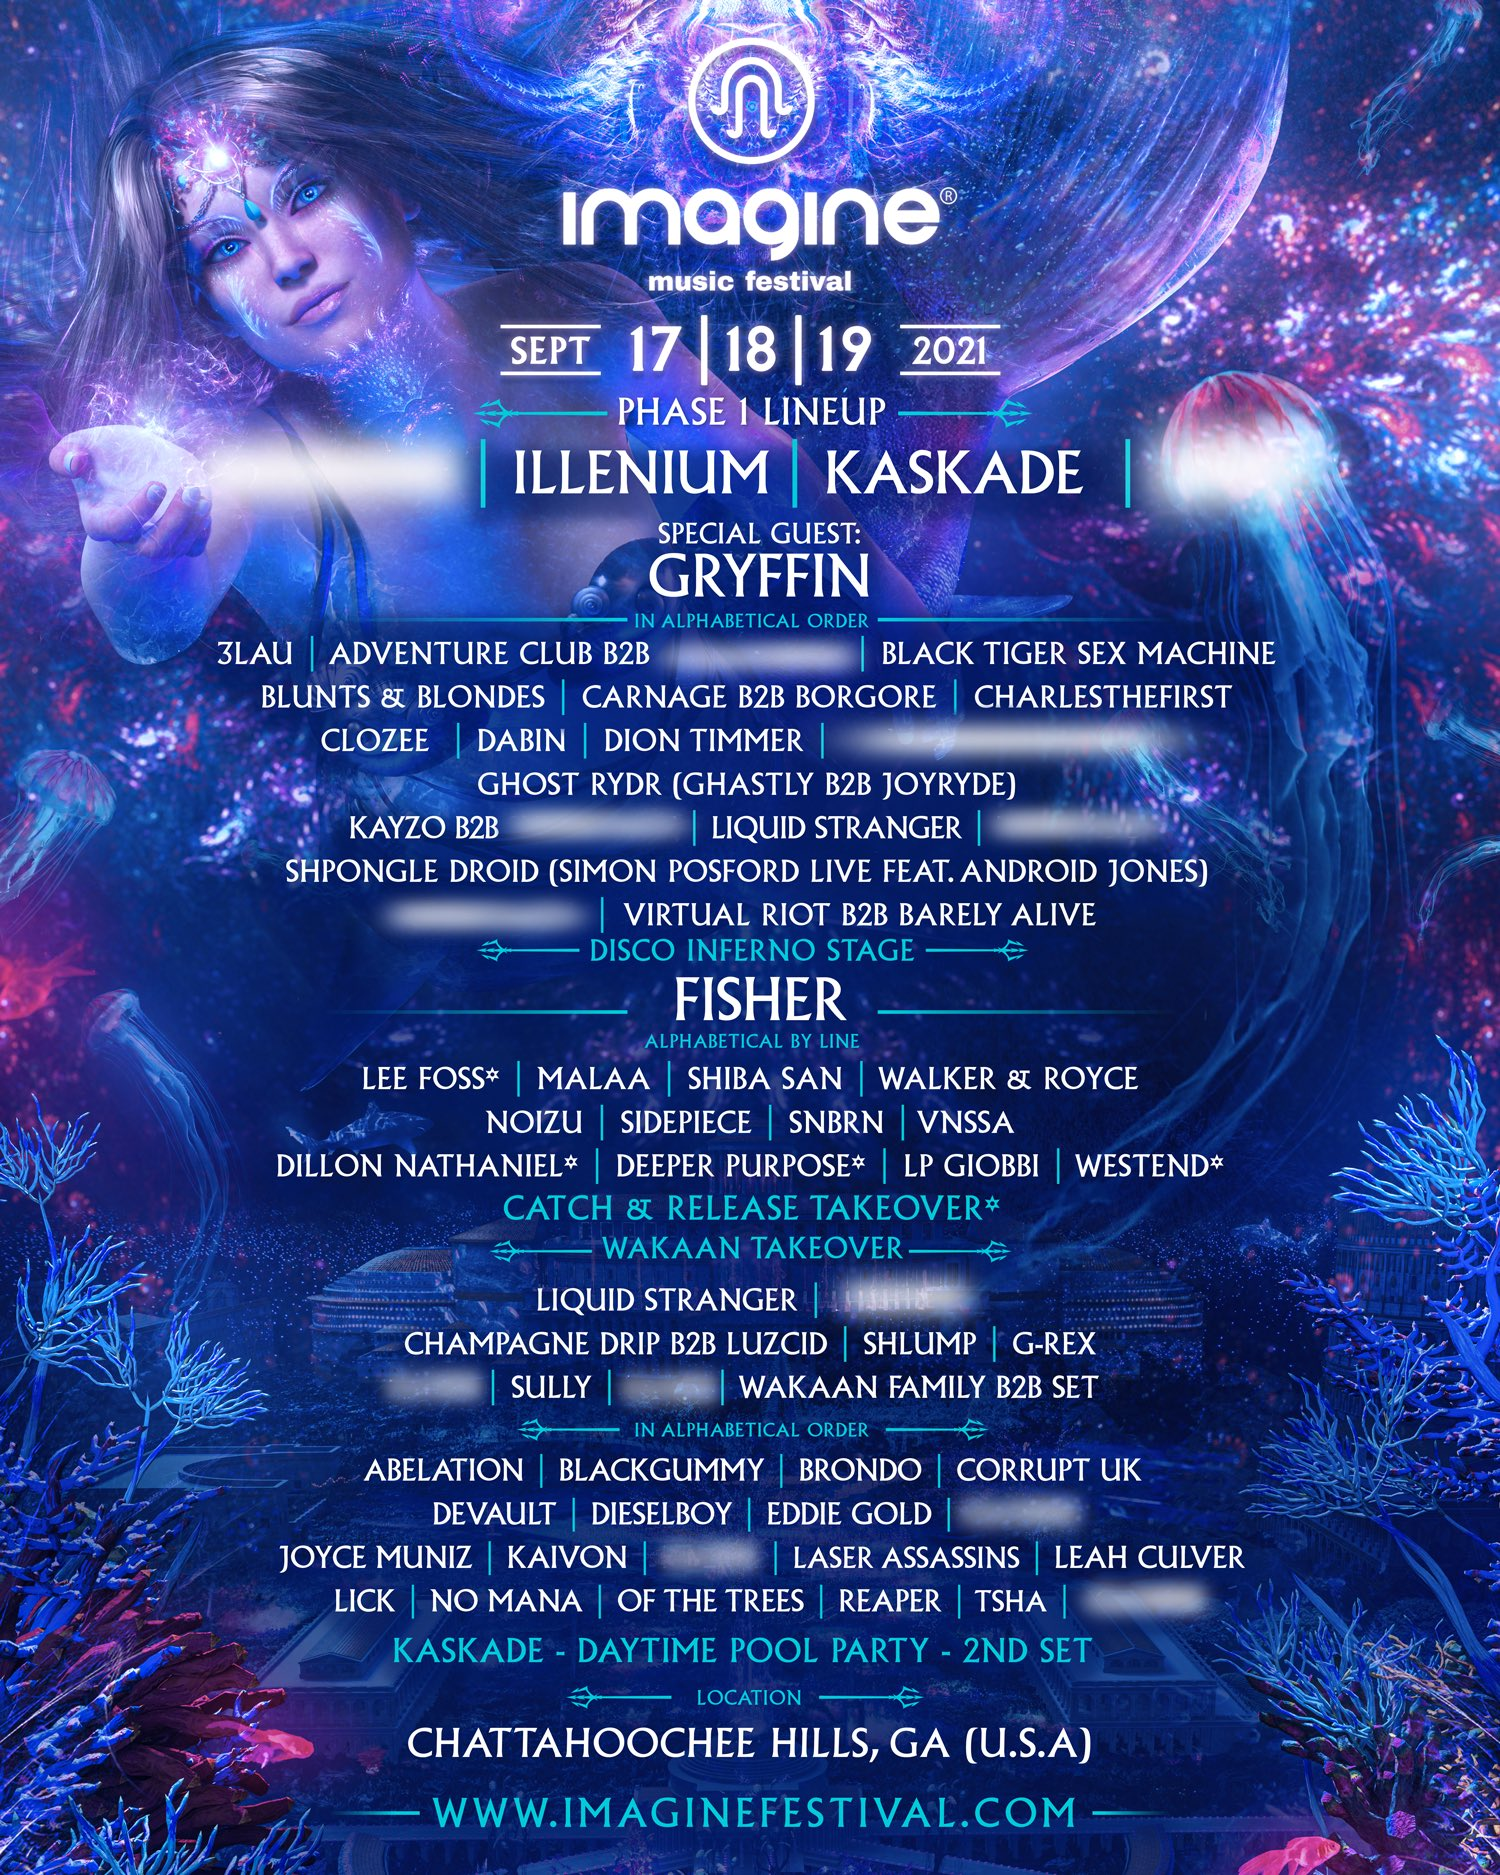 Imagine Phase 2021 lineup